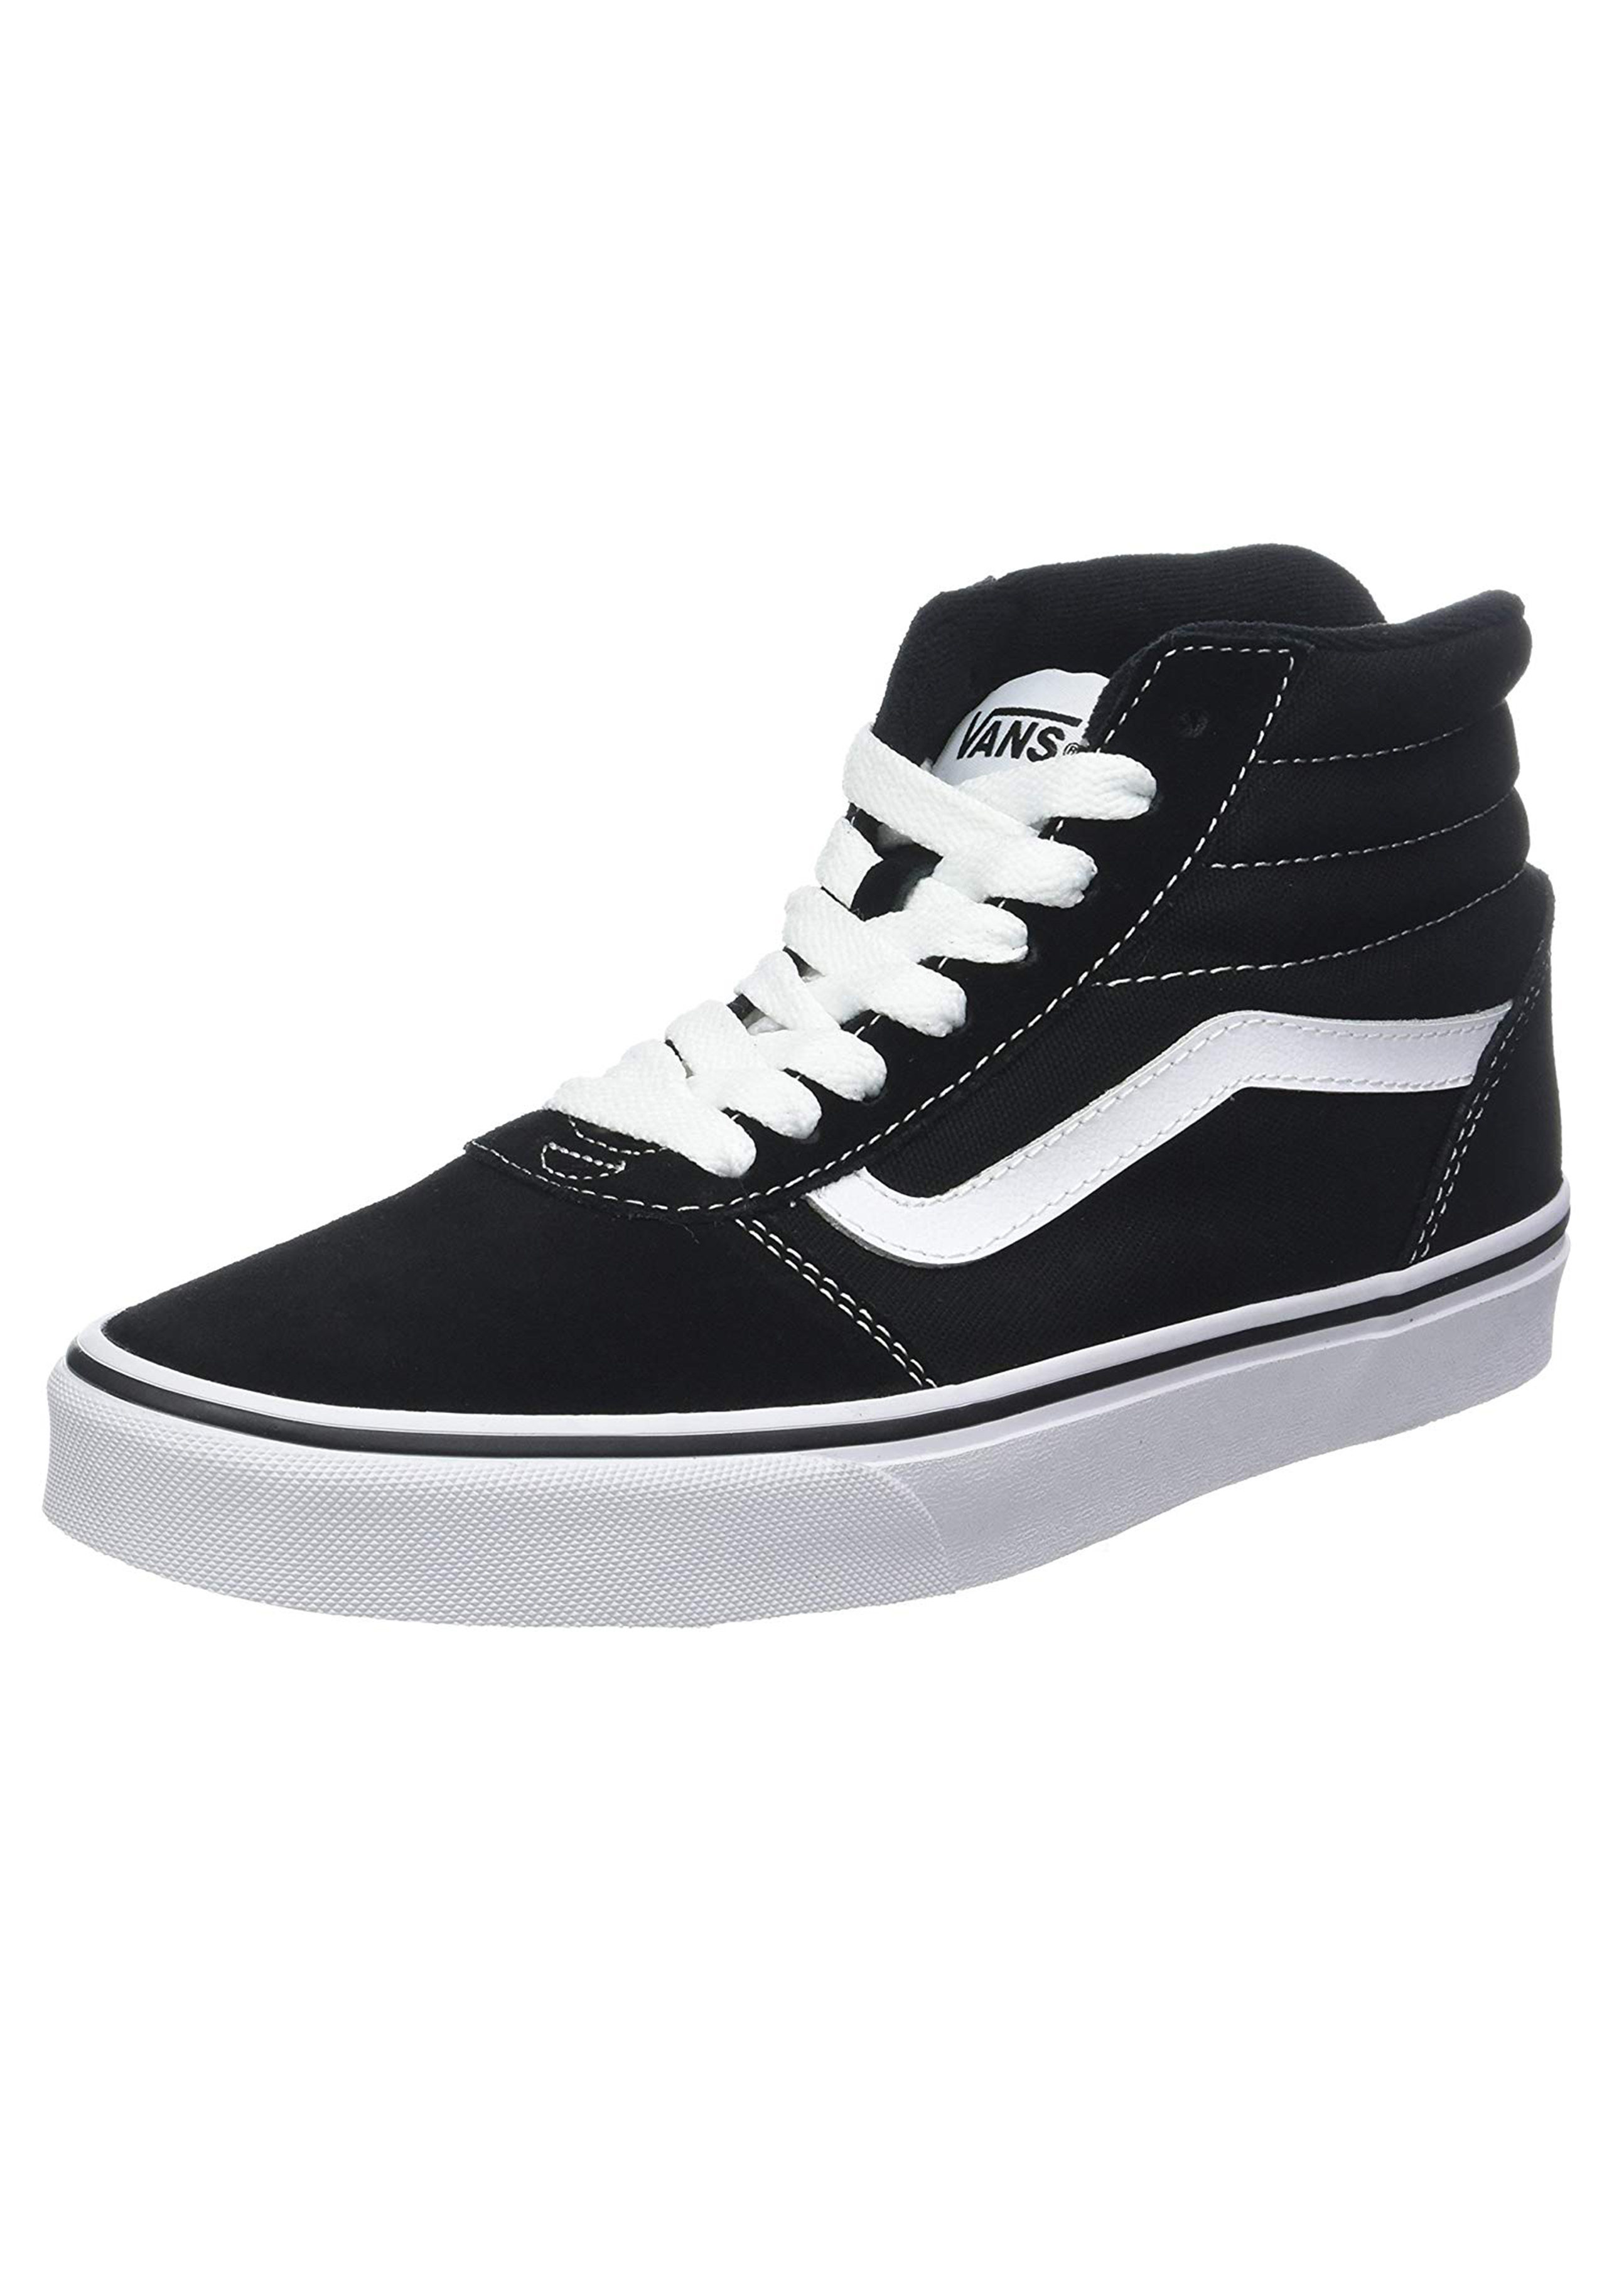 80783bd5668 Click on the Image to Enlarge. More Details. These stylish VANS Chapman  High Canvas Suede Stripe Trainers ...